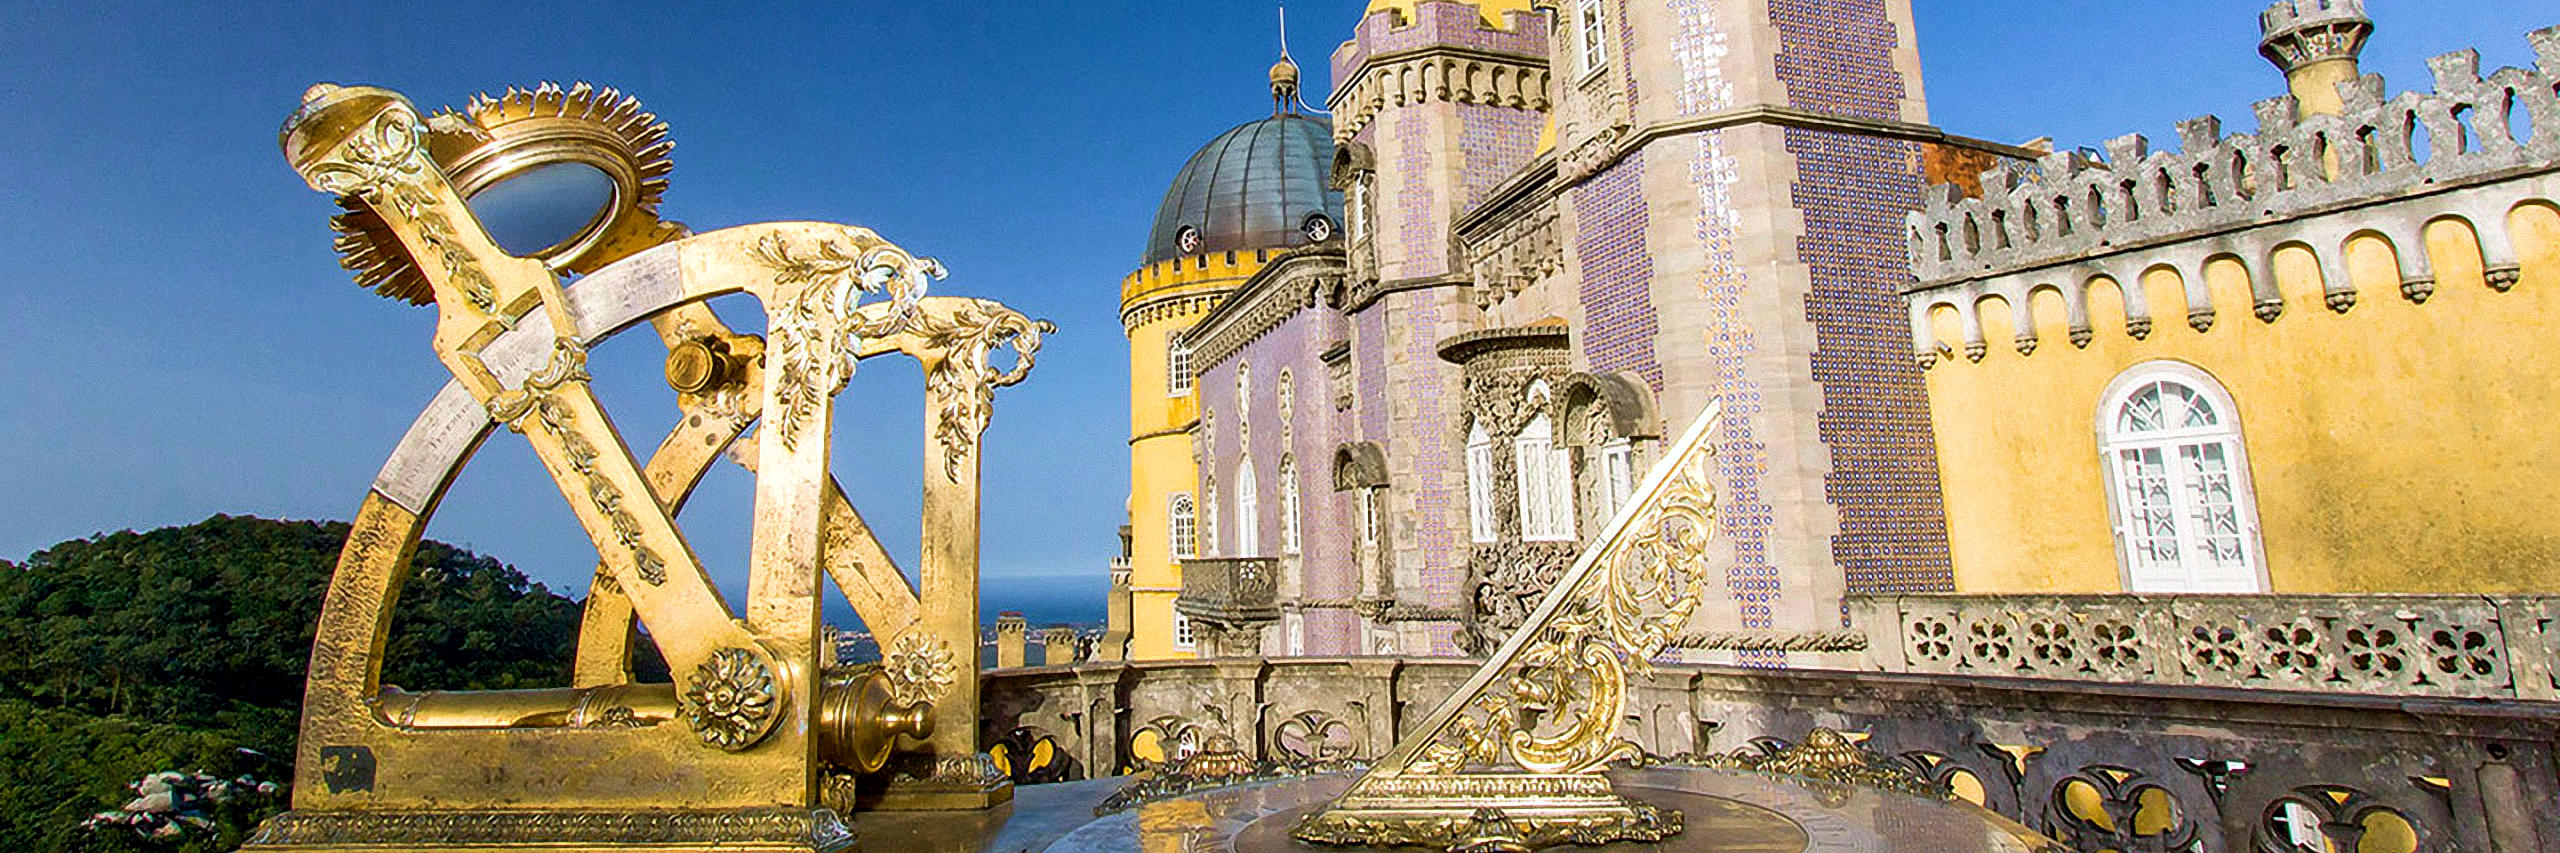 Pena Palace Queen's terrace featuring a sundial and cannon